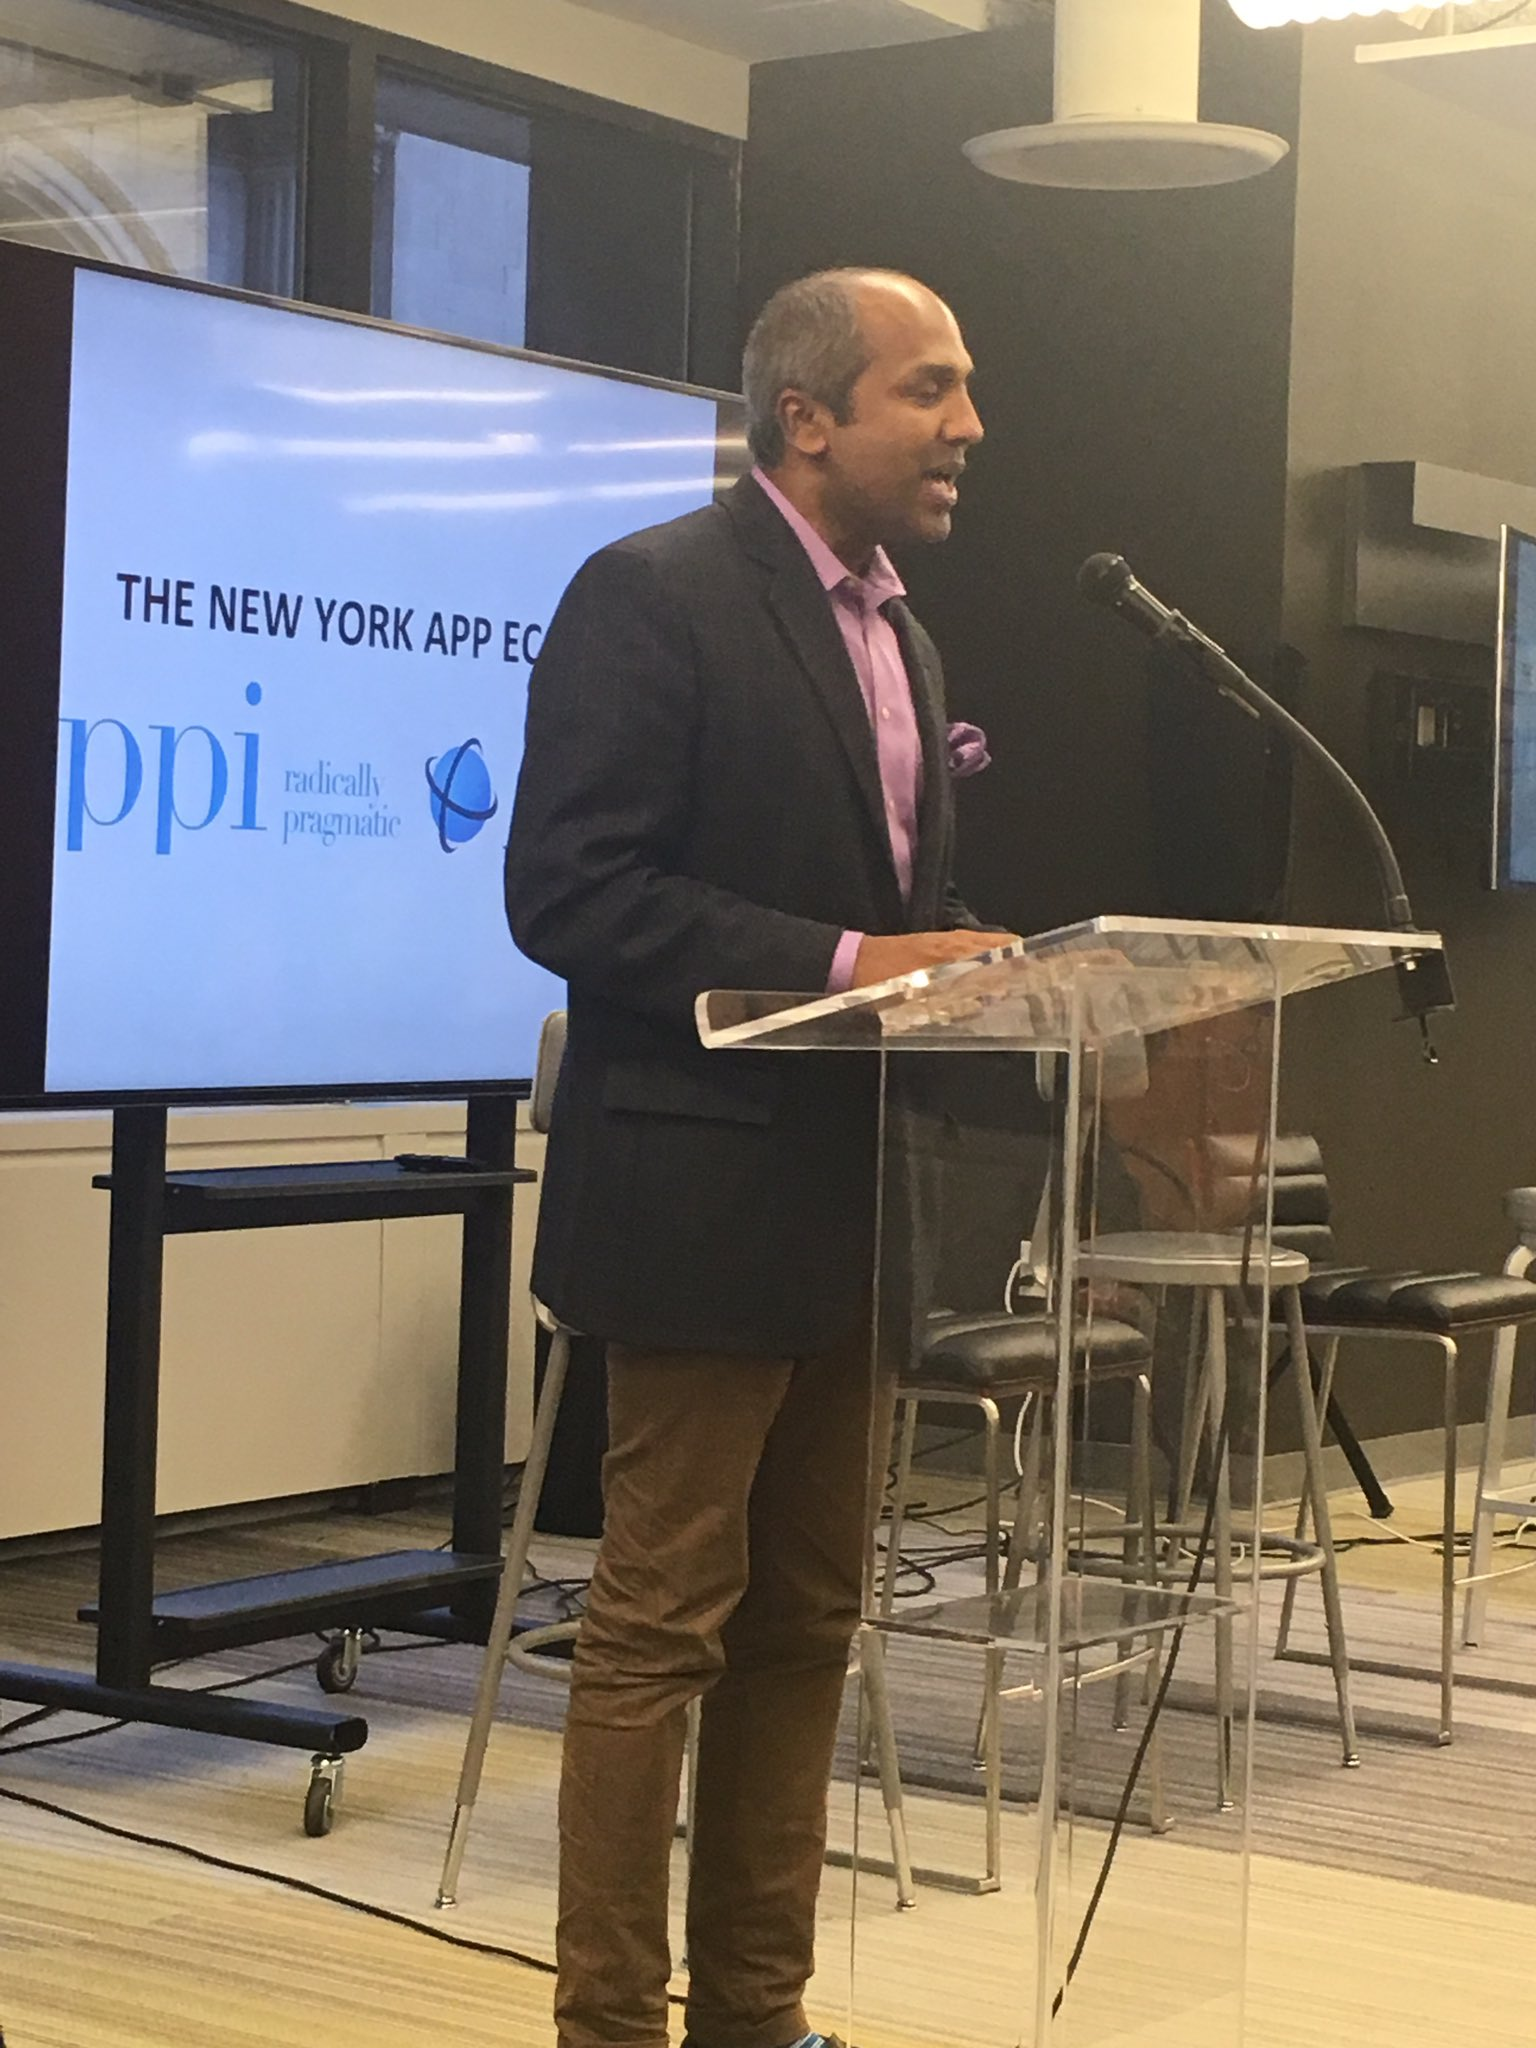 NY CDO @sree is a pioneer in the digital space! NY is lucky to have him innovating the future. #appeconomy https://t.co/uoZGRTqYhR